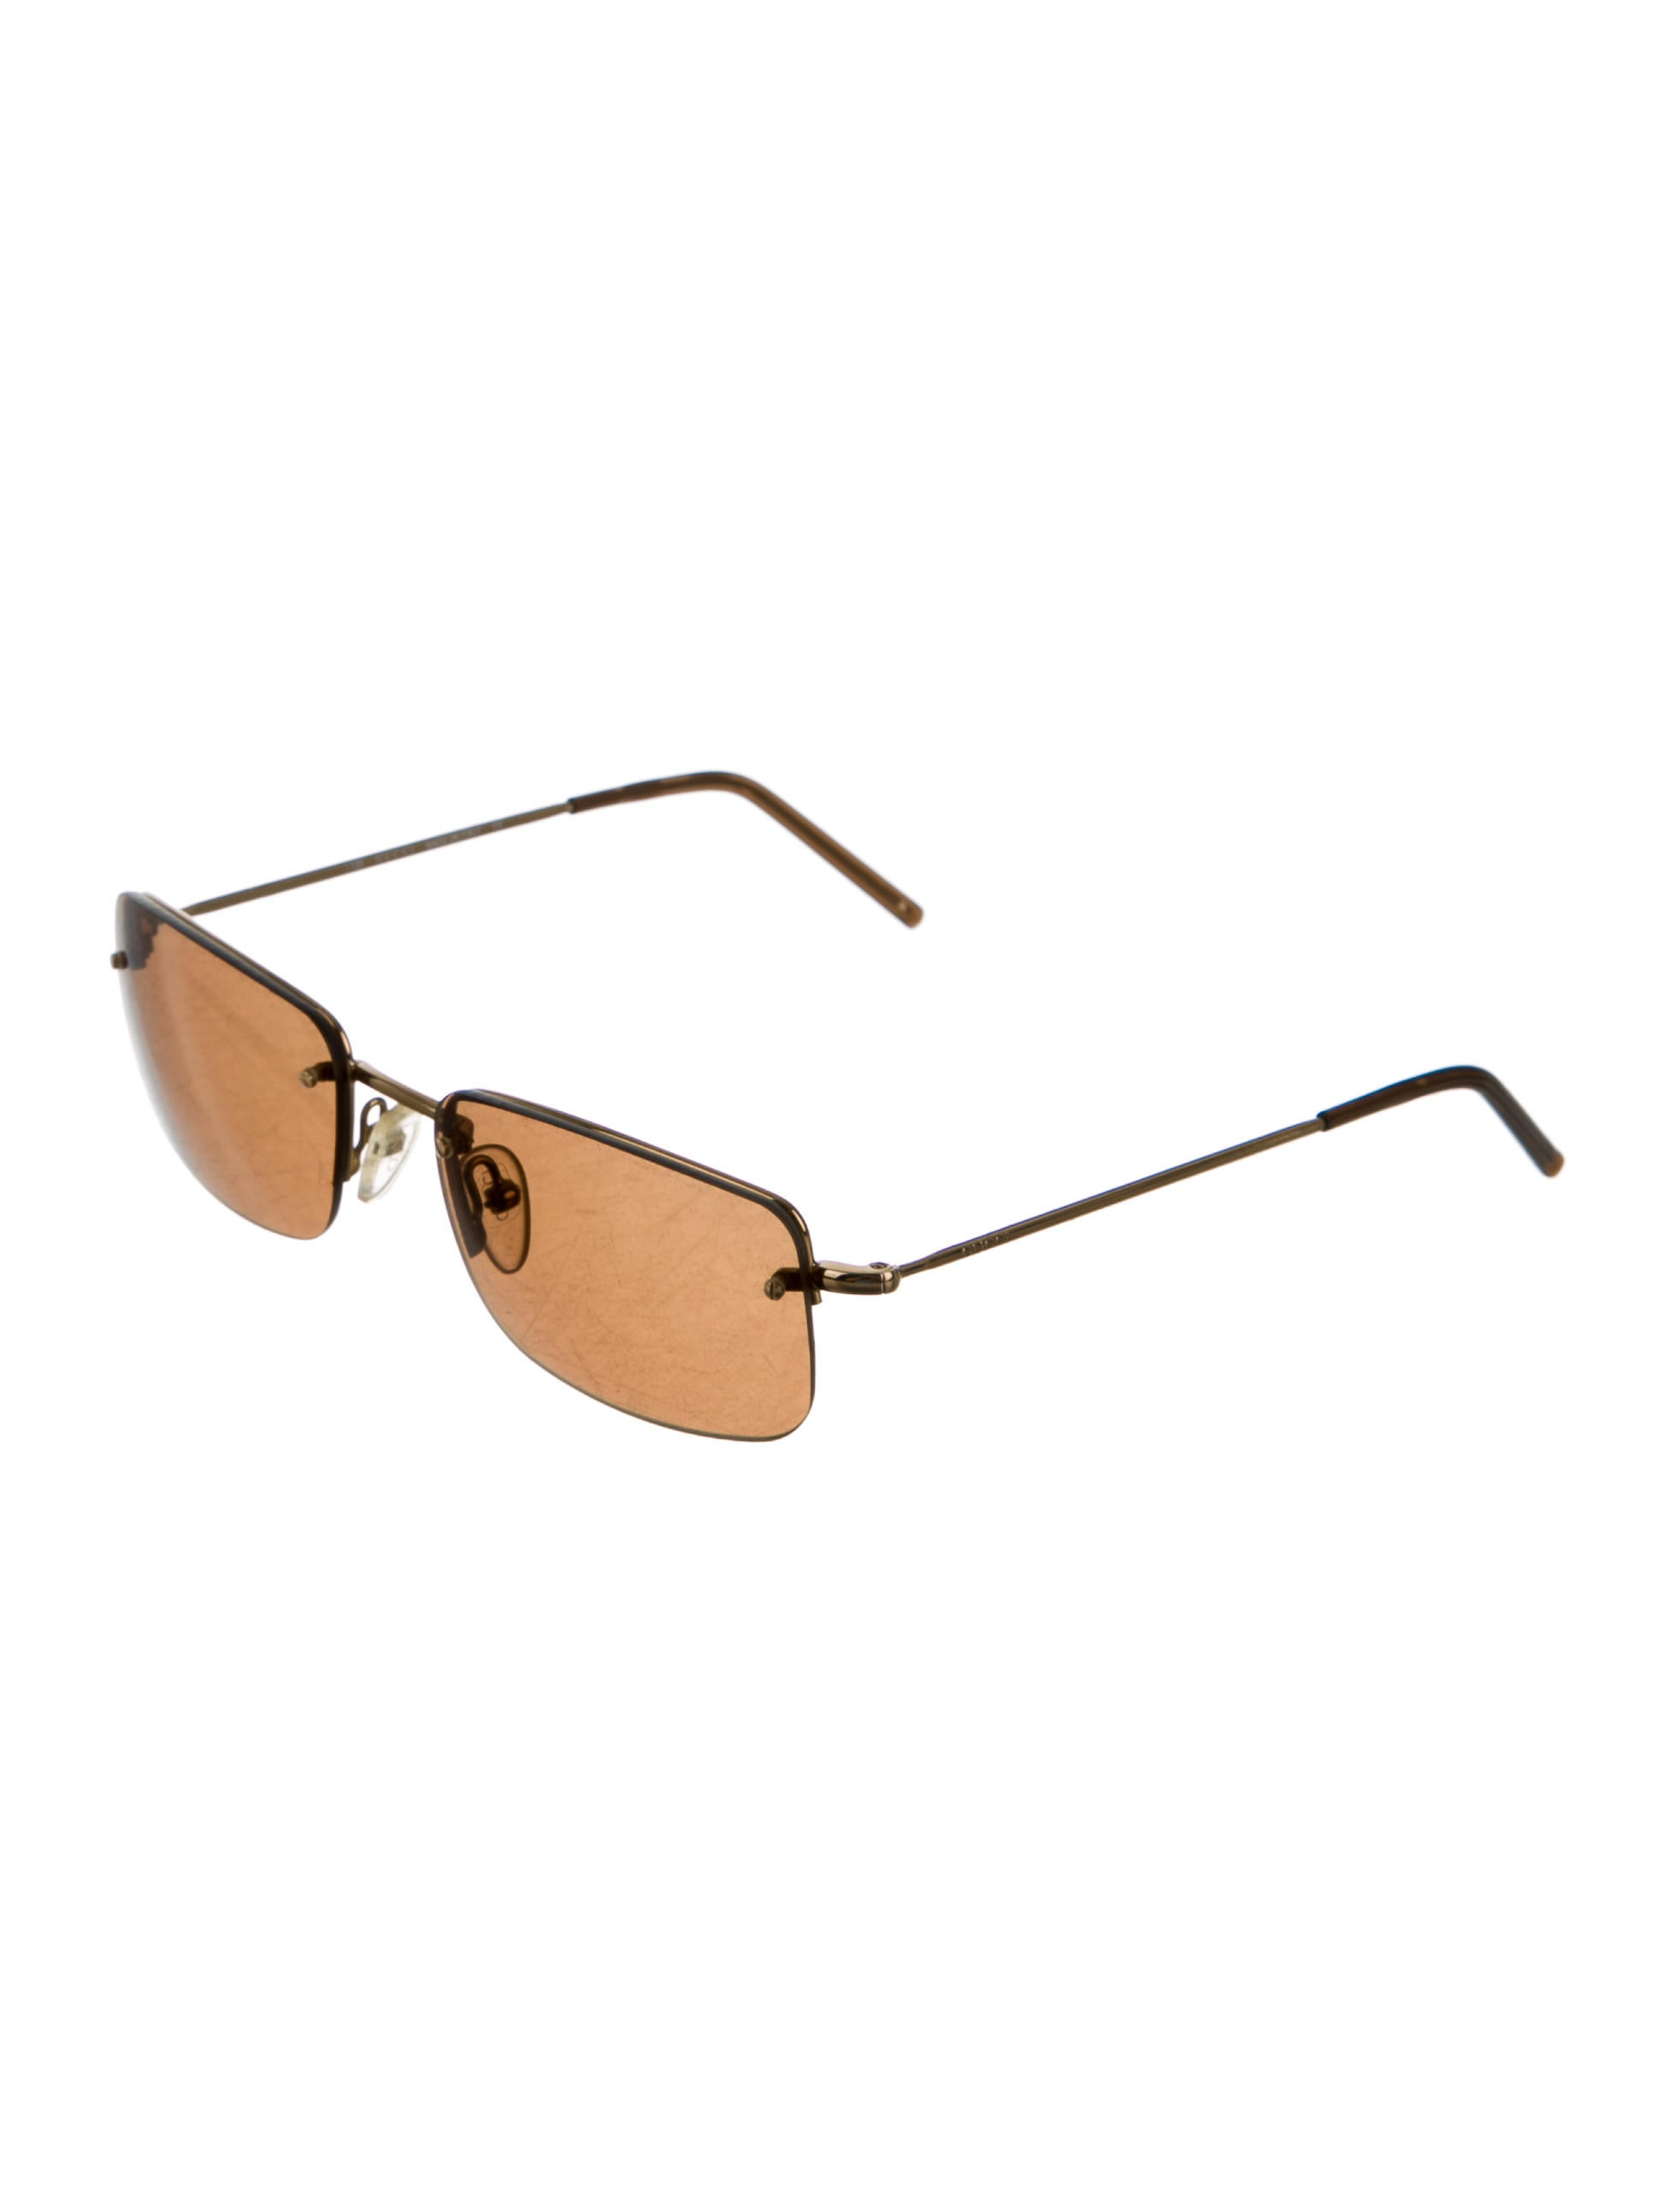 Gucci Tinted Rimless Sunglasses - Accessories - GUC133560 ...